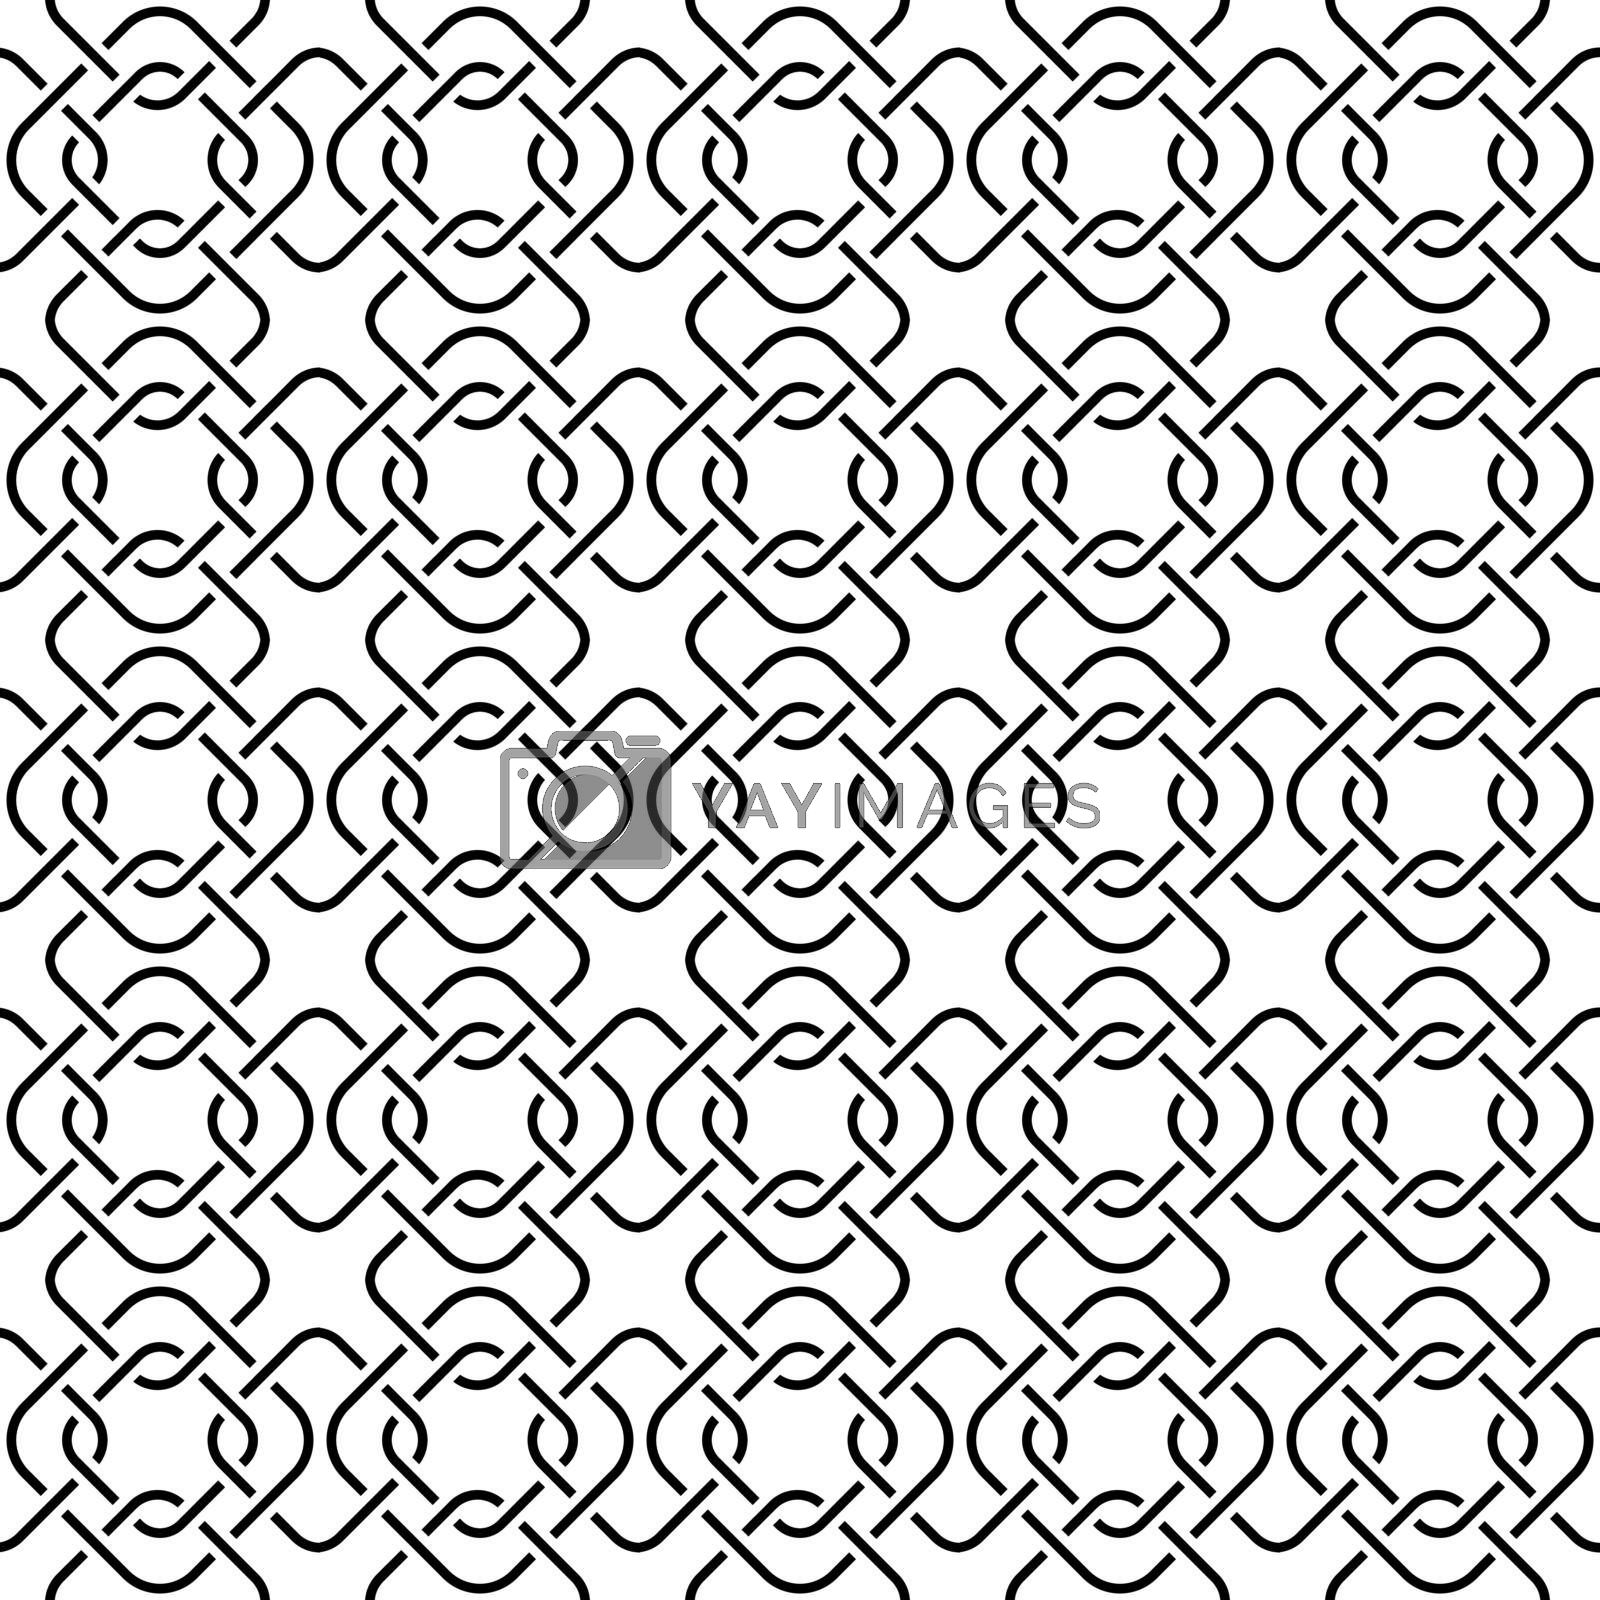 Seamless geometric pattern of intersecting squares for textures, textiles, and simple backgrounds. Flat design.